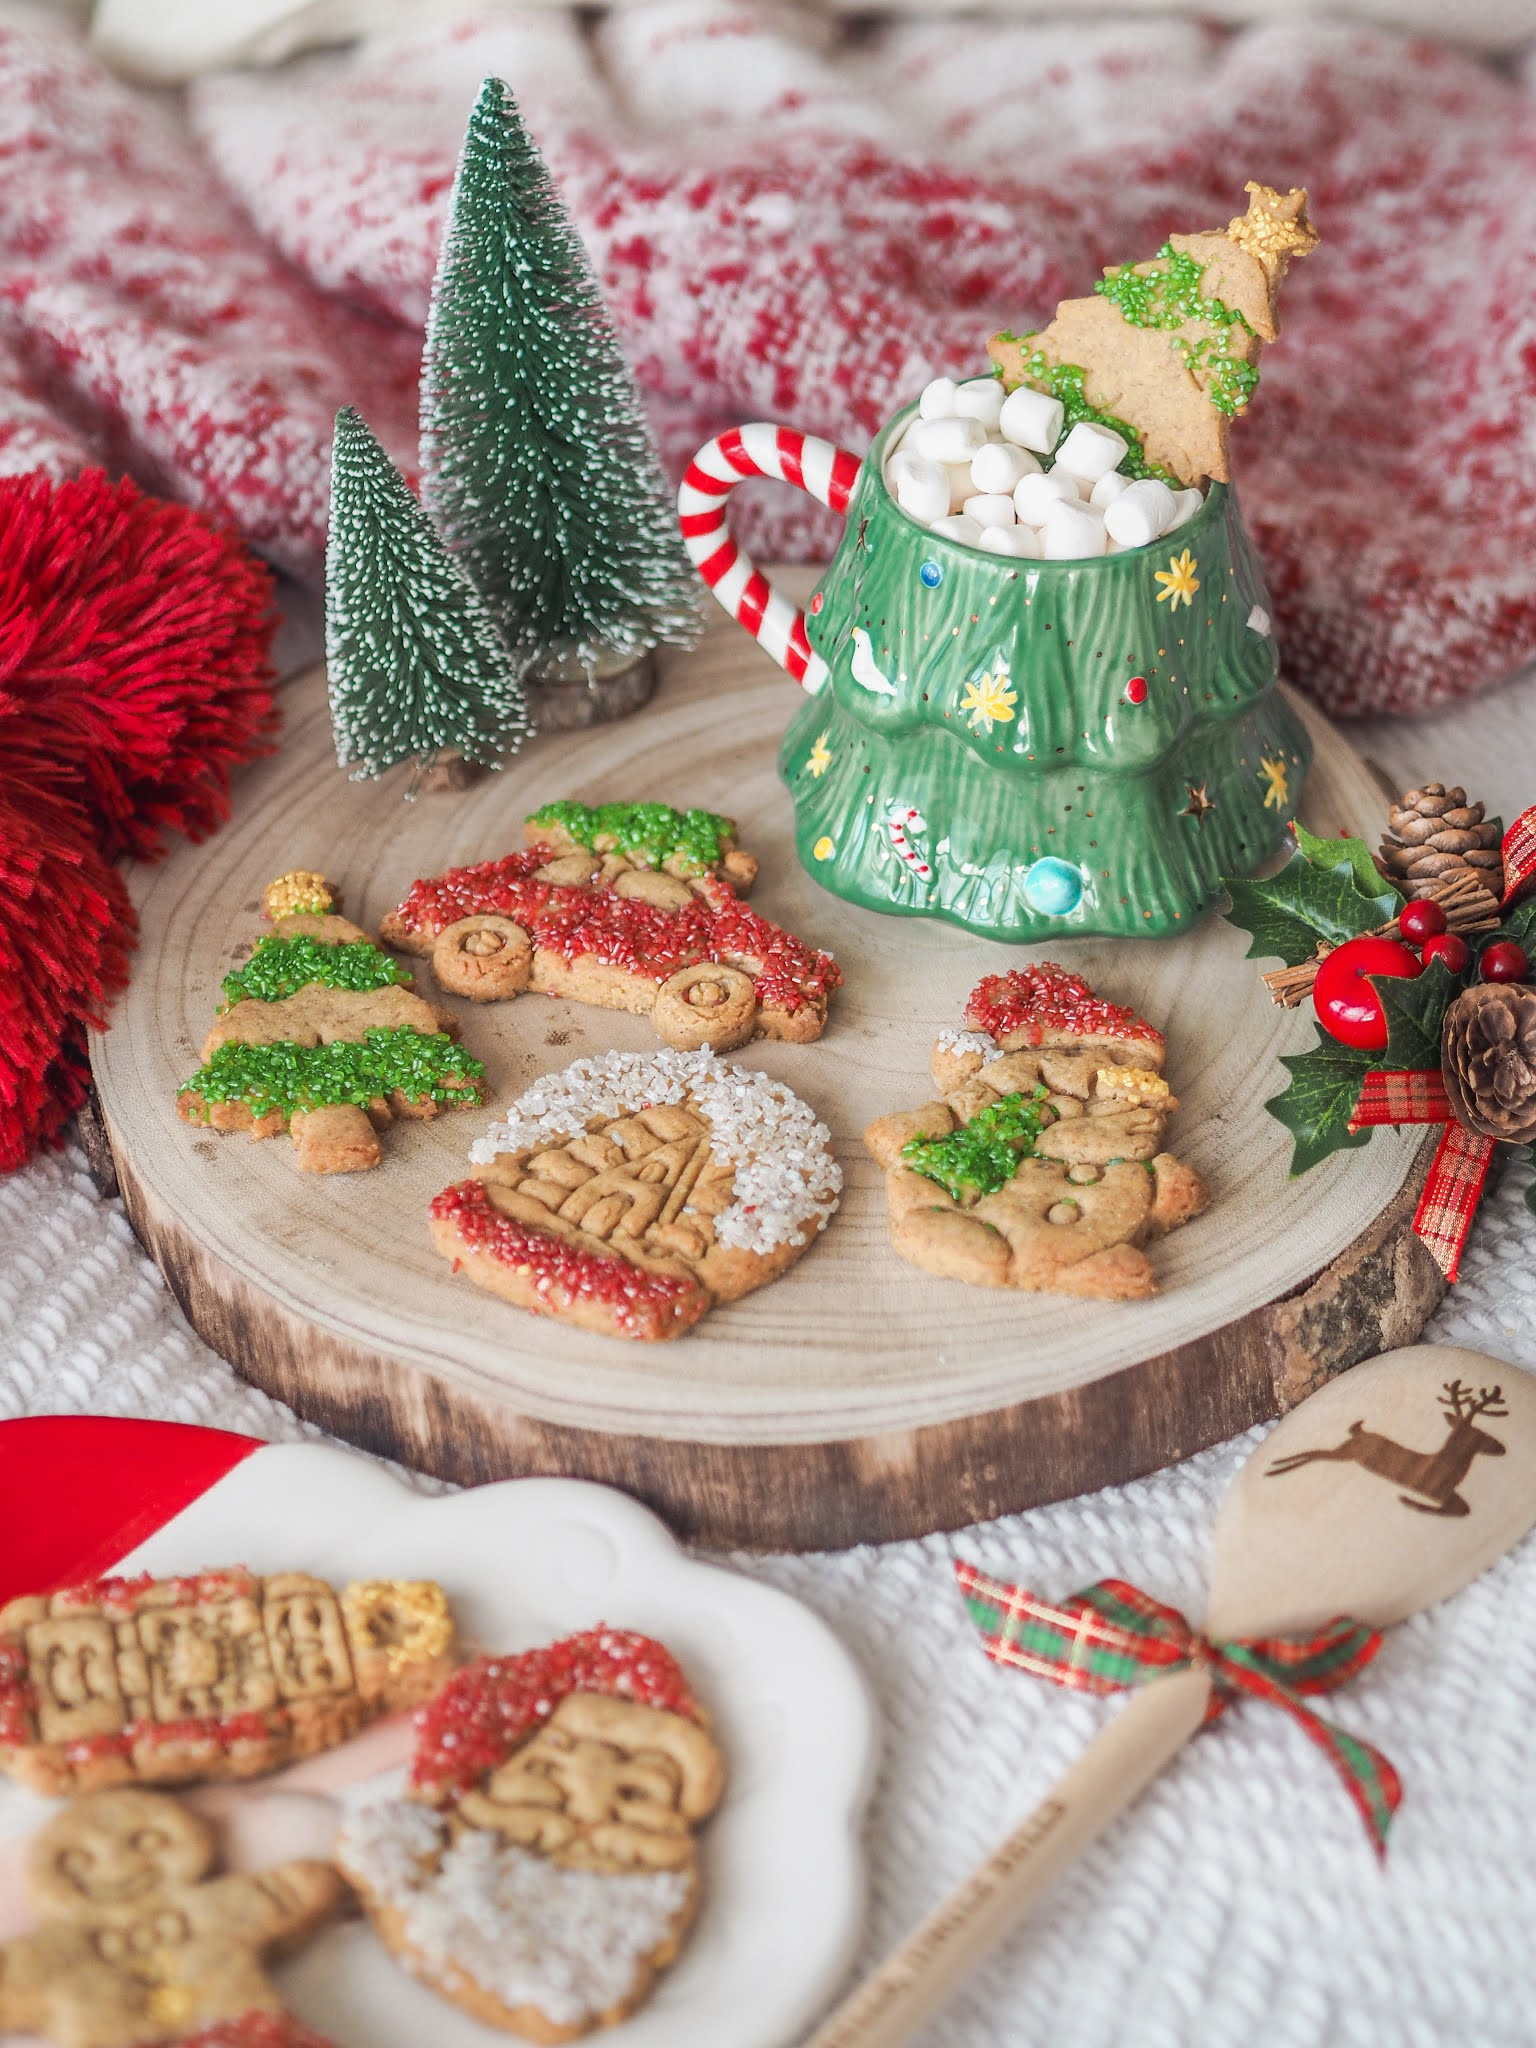 Crisp Gingerbread Christmas Cookies, Food Blogger, Katie Kirk Loves, UK Blogger, Christmas Recipe, Christmas Baking, Homemade Christmas Gifts, Home Baking, UK Baking Blog, UK Recipe, Christmas Cookies, Gingerbread Cookies